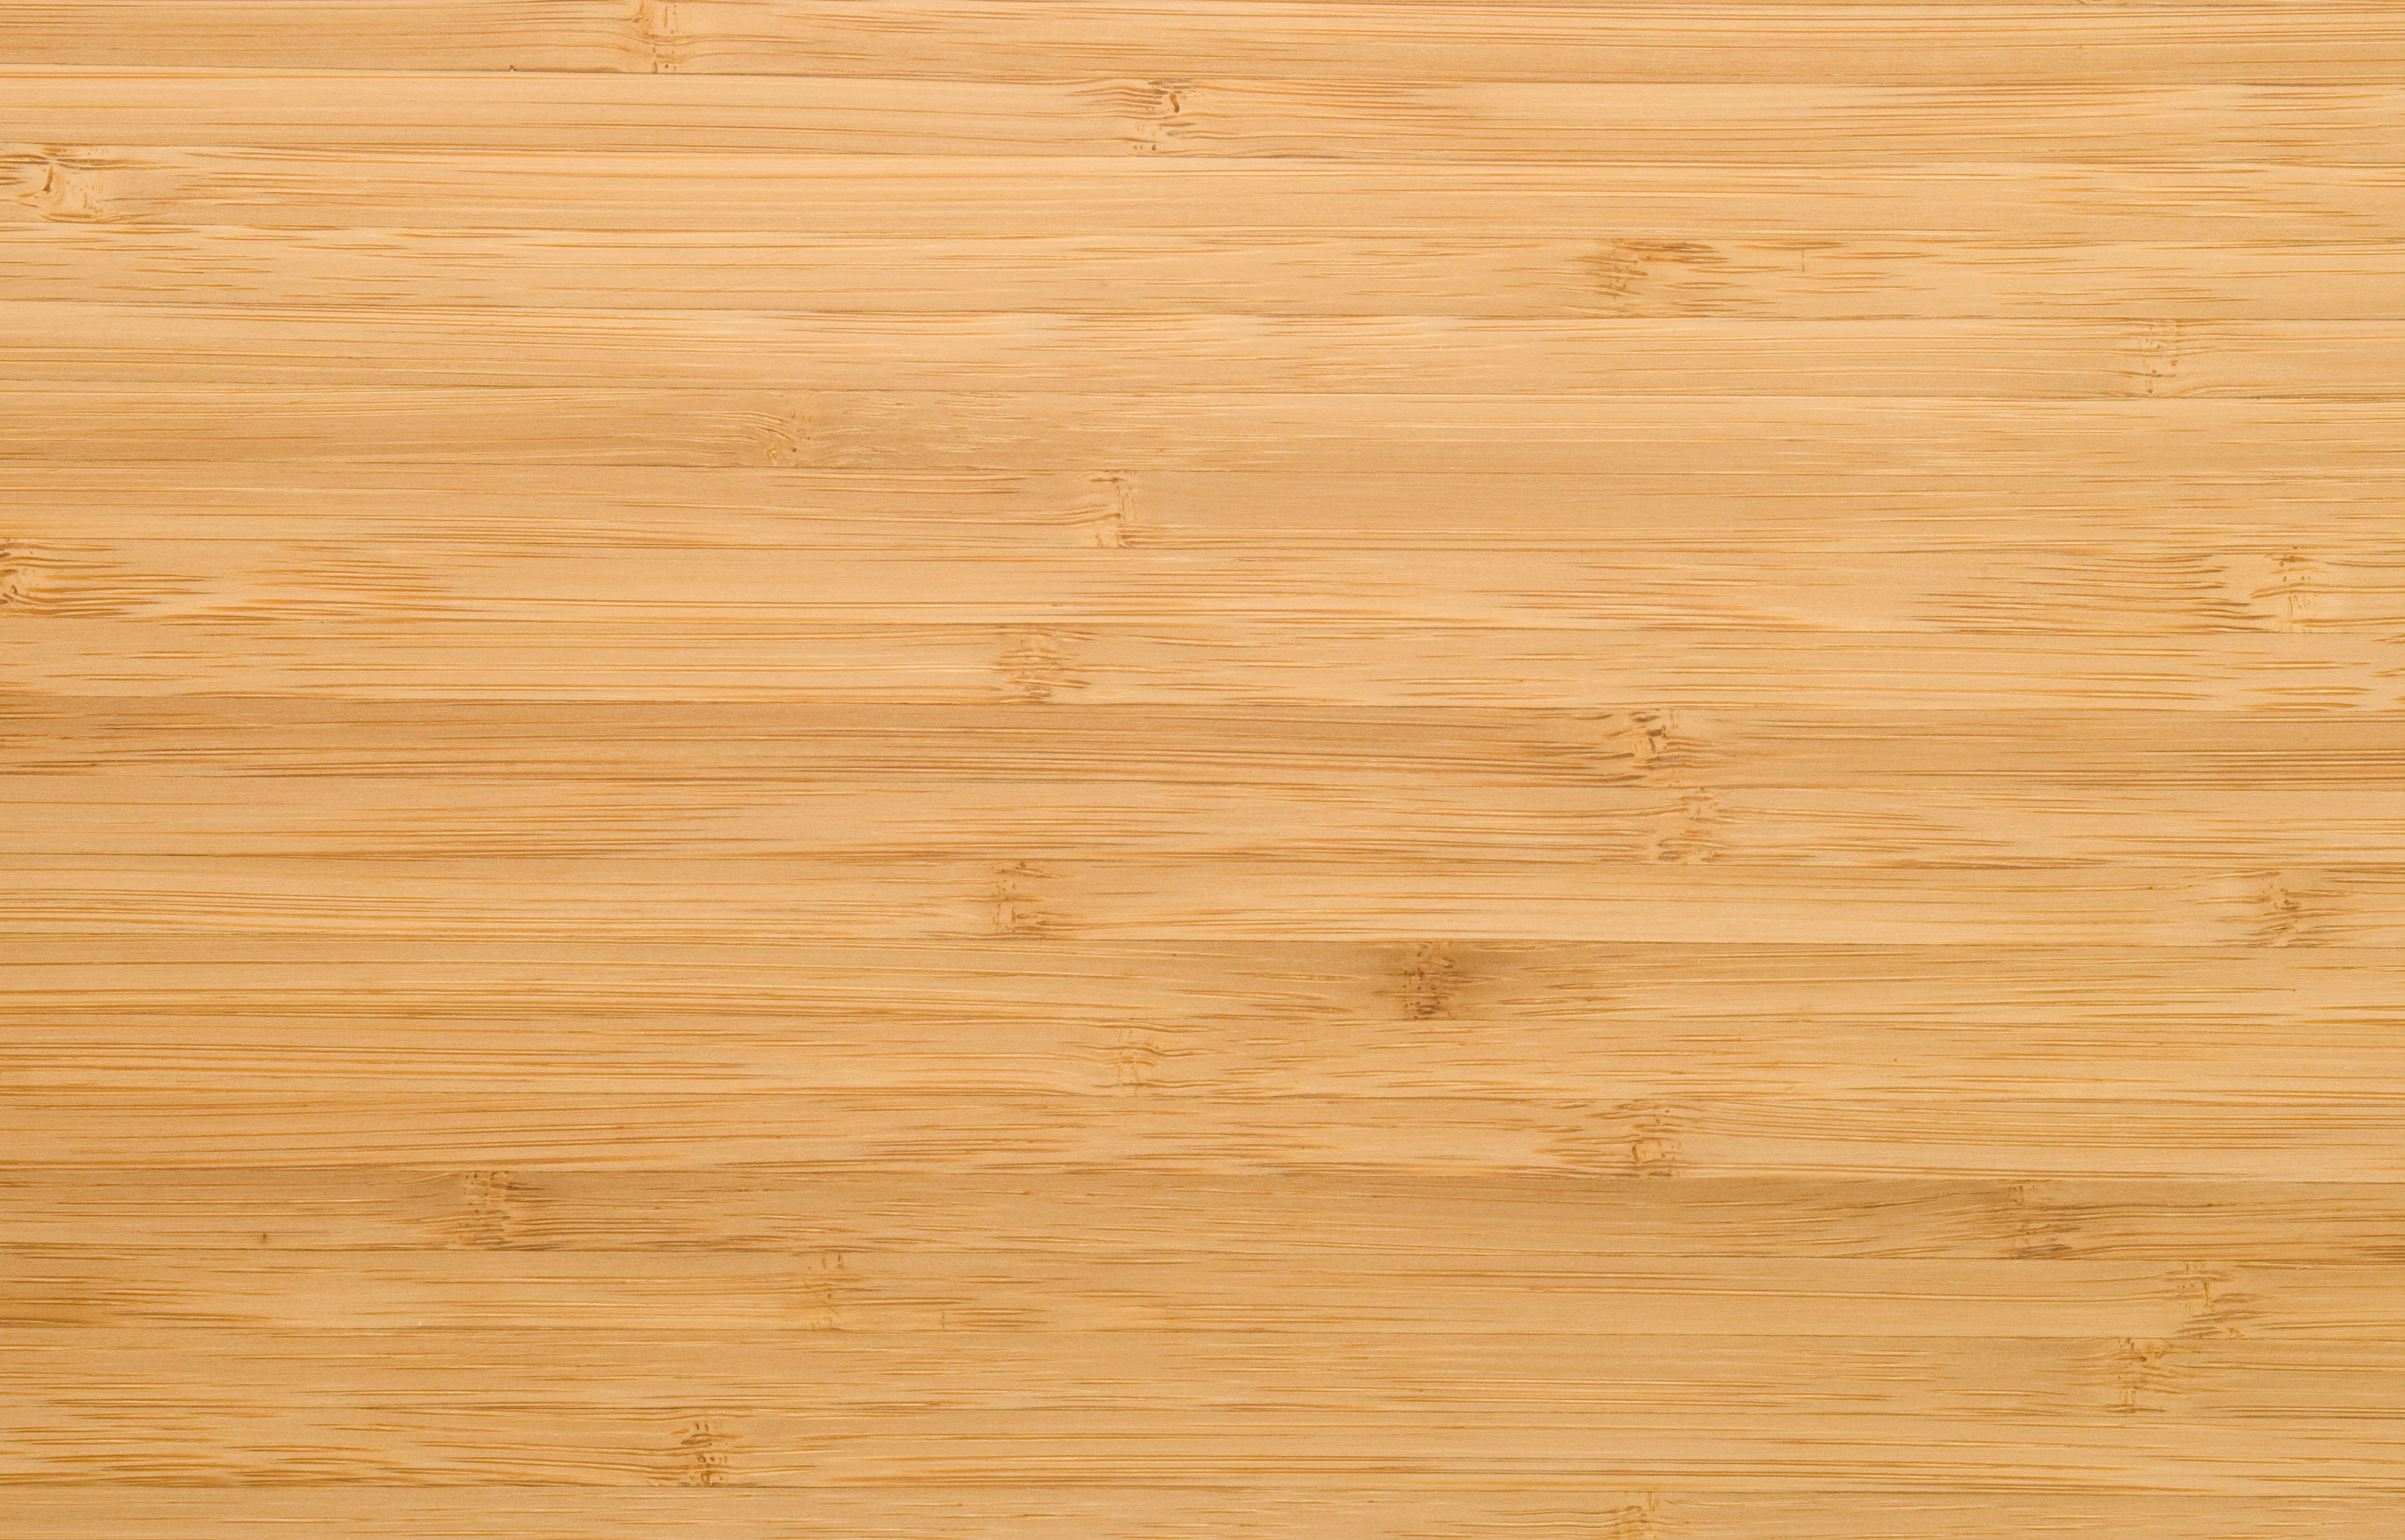 electric mops for hardwood floors of can you use a wet mop on bamboo floors inside natural bamboo plank 94259870 59aeefd4519de20010d5c648